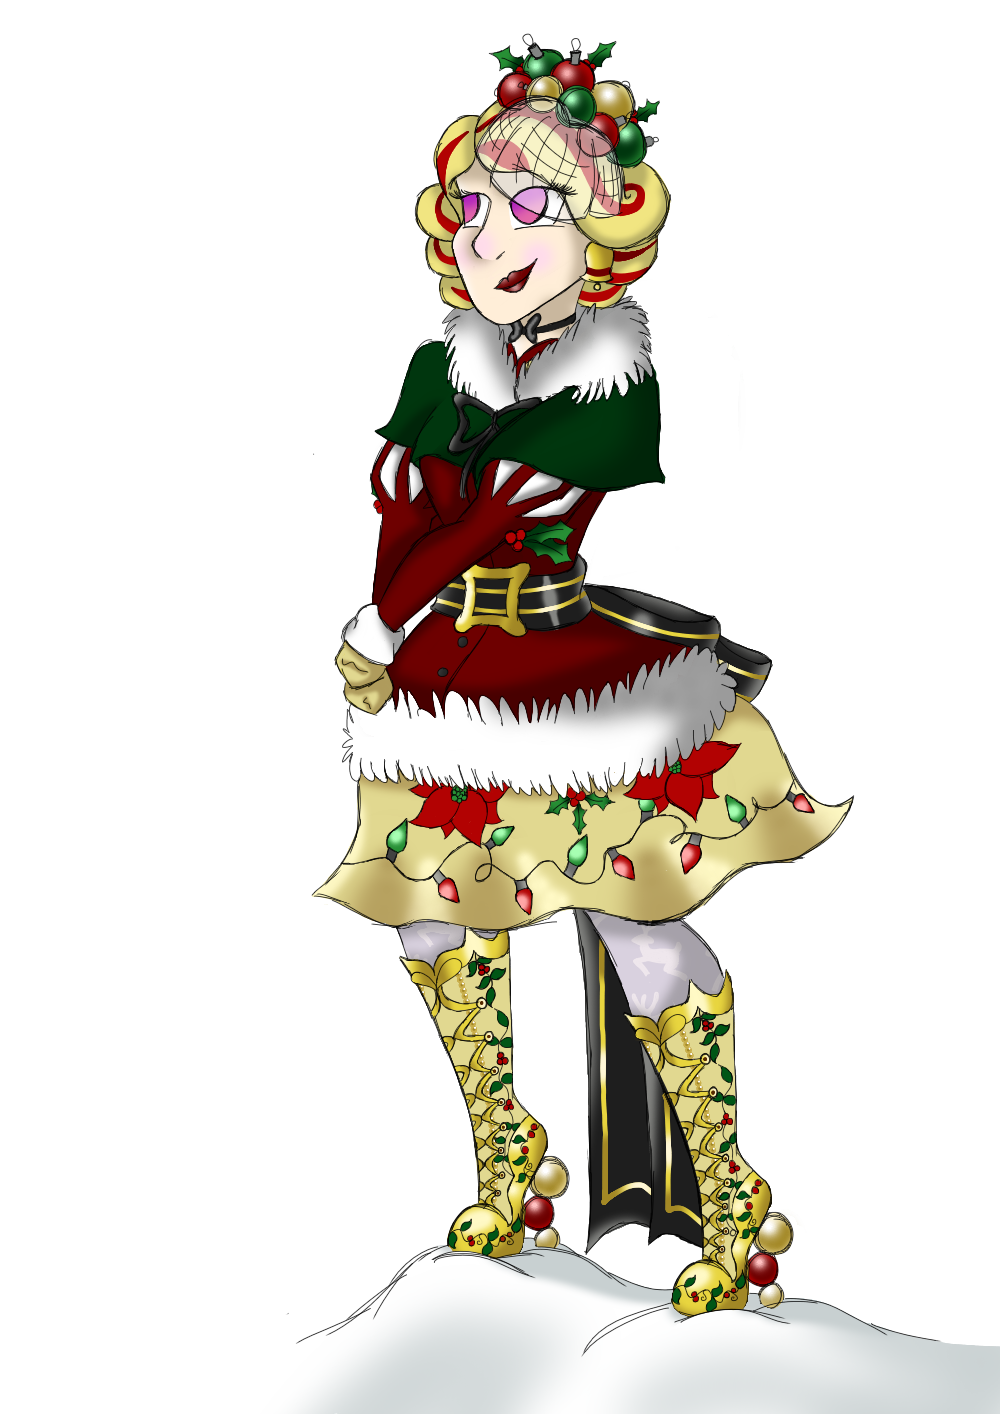 Destiny Claus - Ss Gift for Wisey